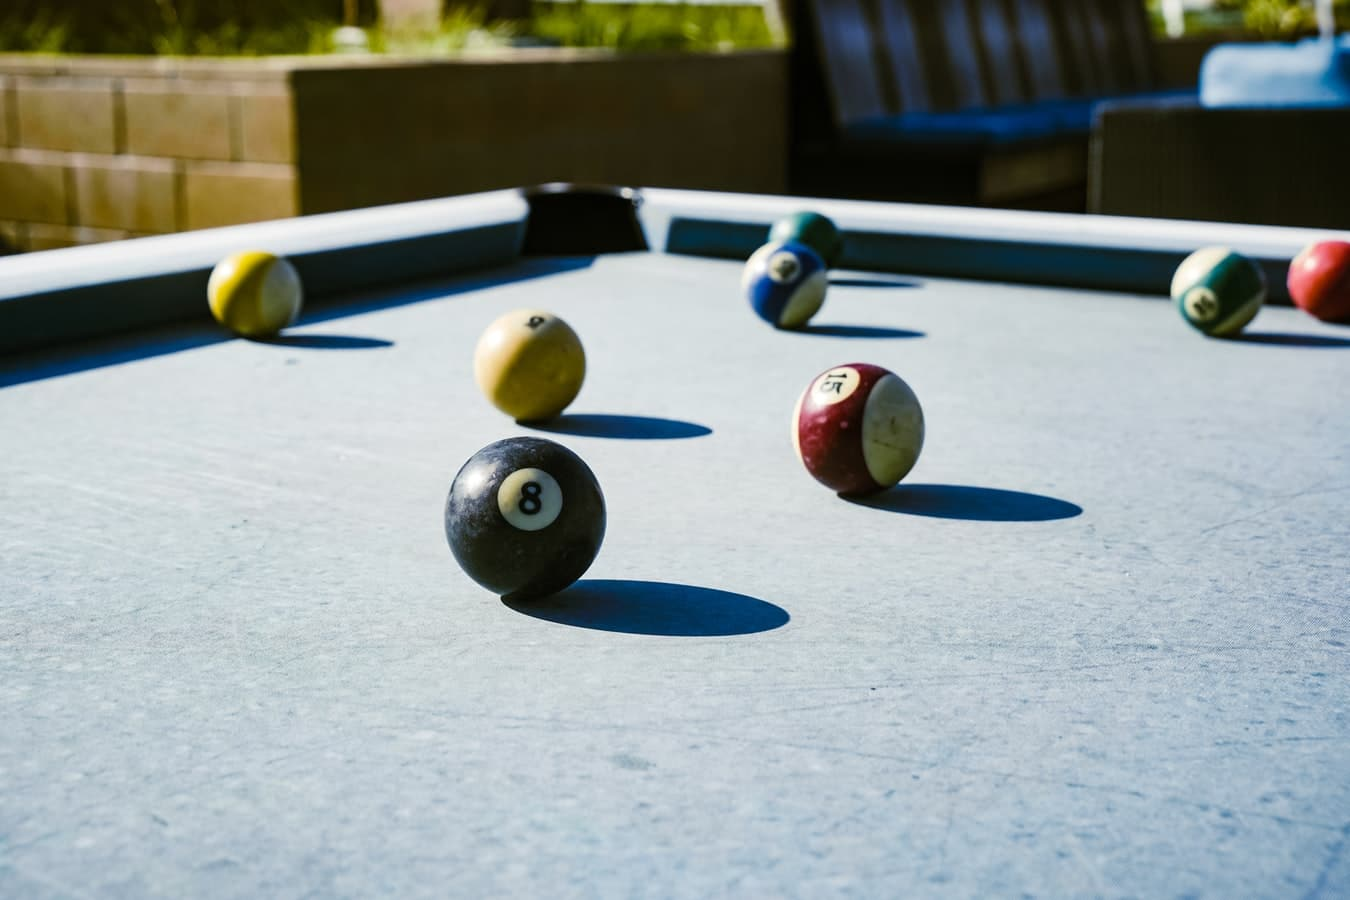 How to Make a Pool Ball Cleaner Yourself